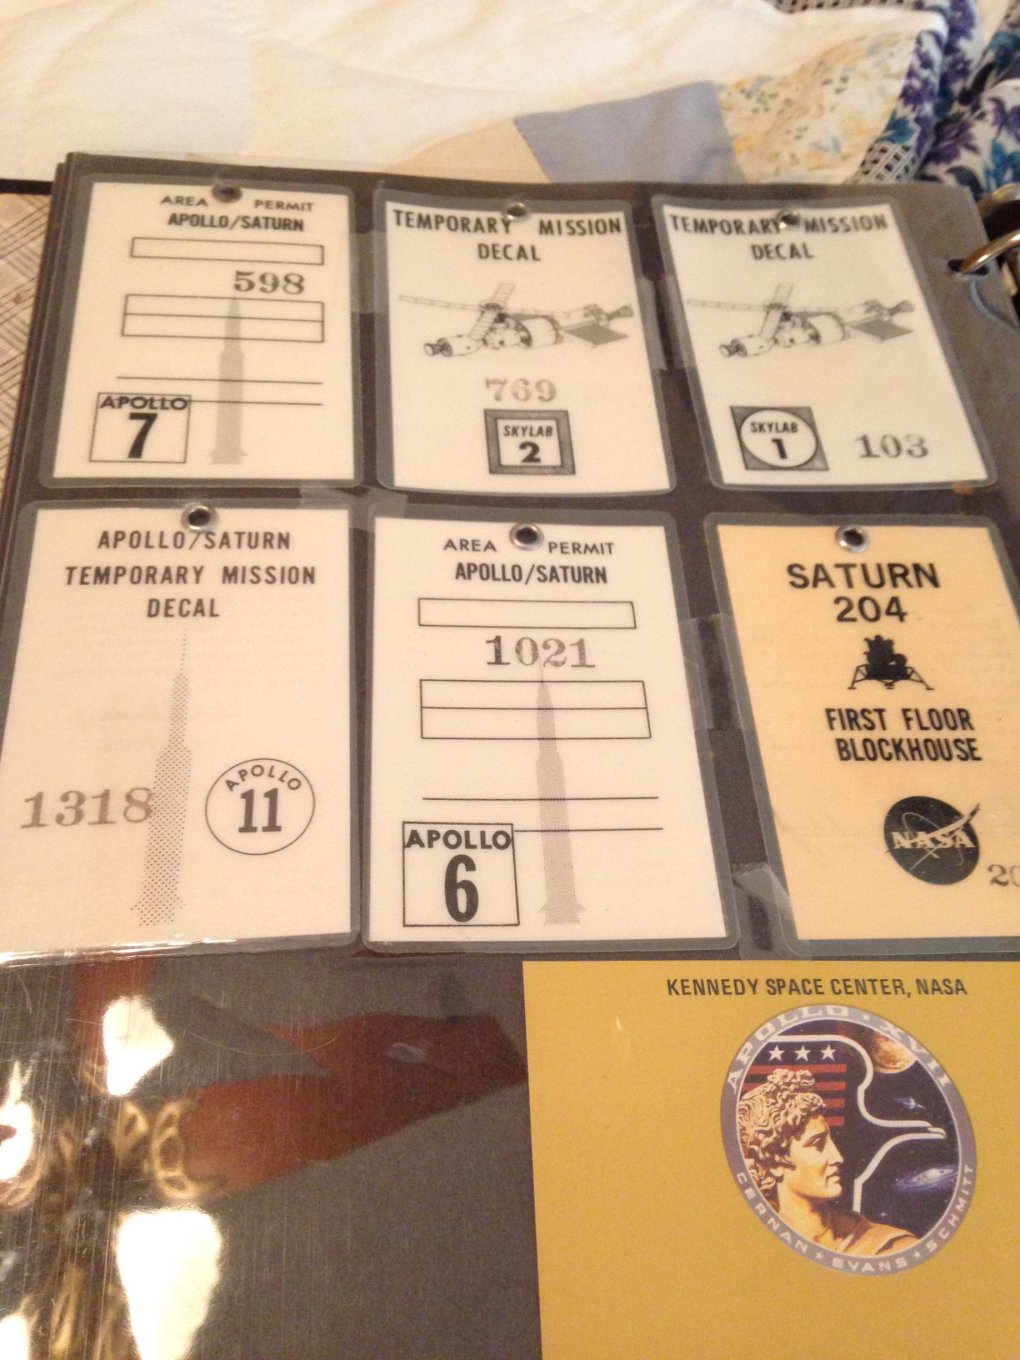 11 c9de59v - guy went through his grandfathers stuff and stumbled upon a binder with all of his nasa stuff